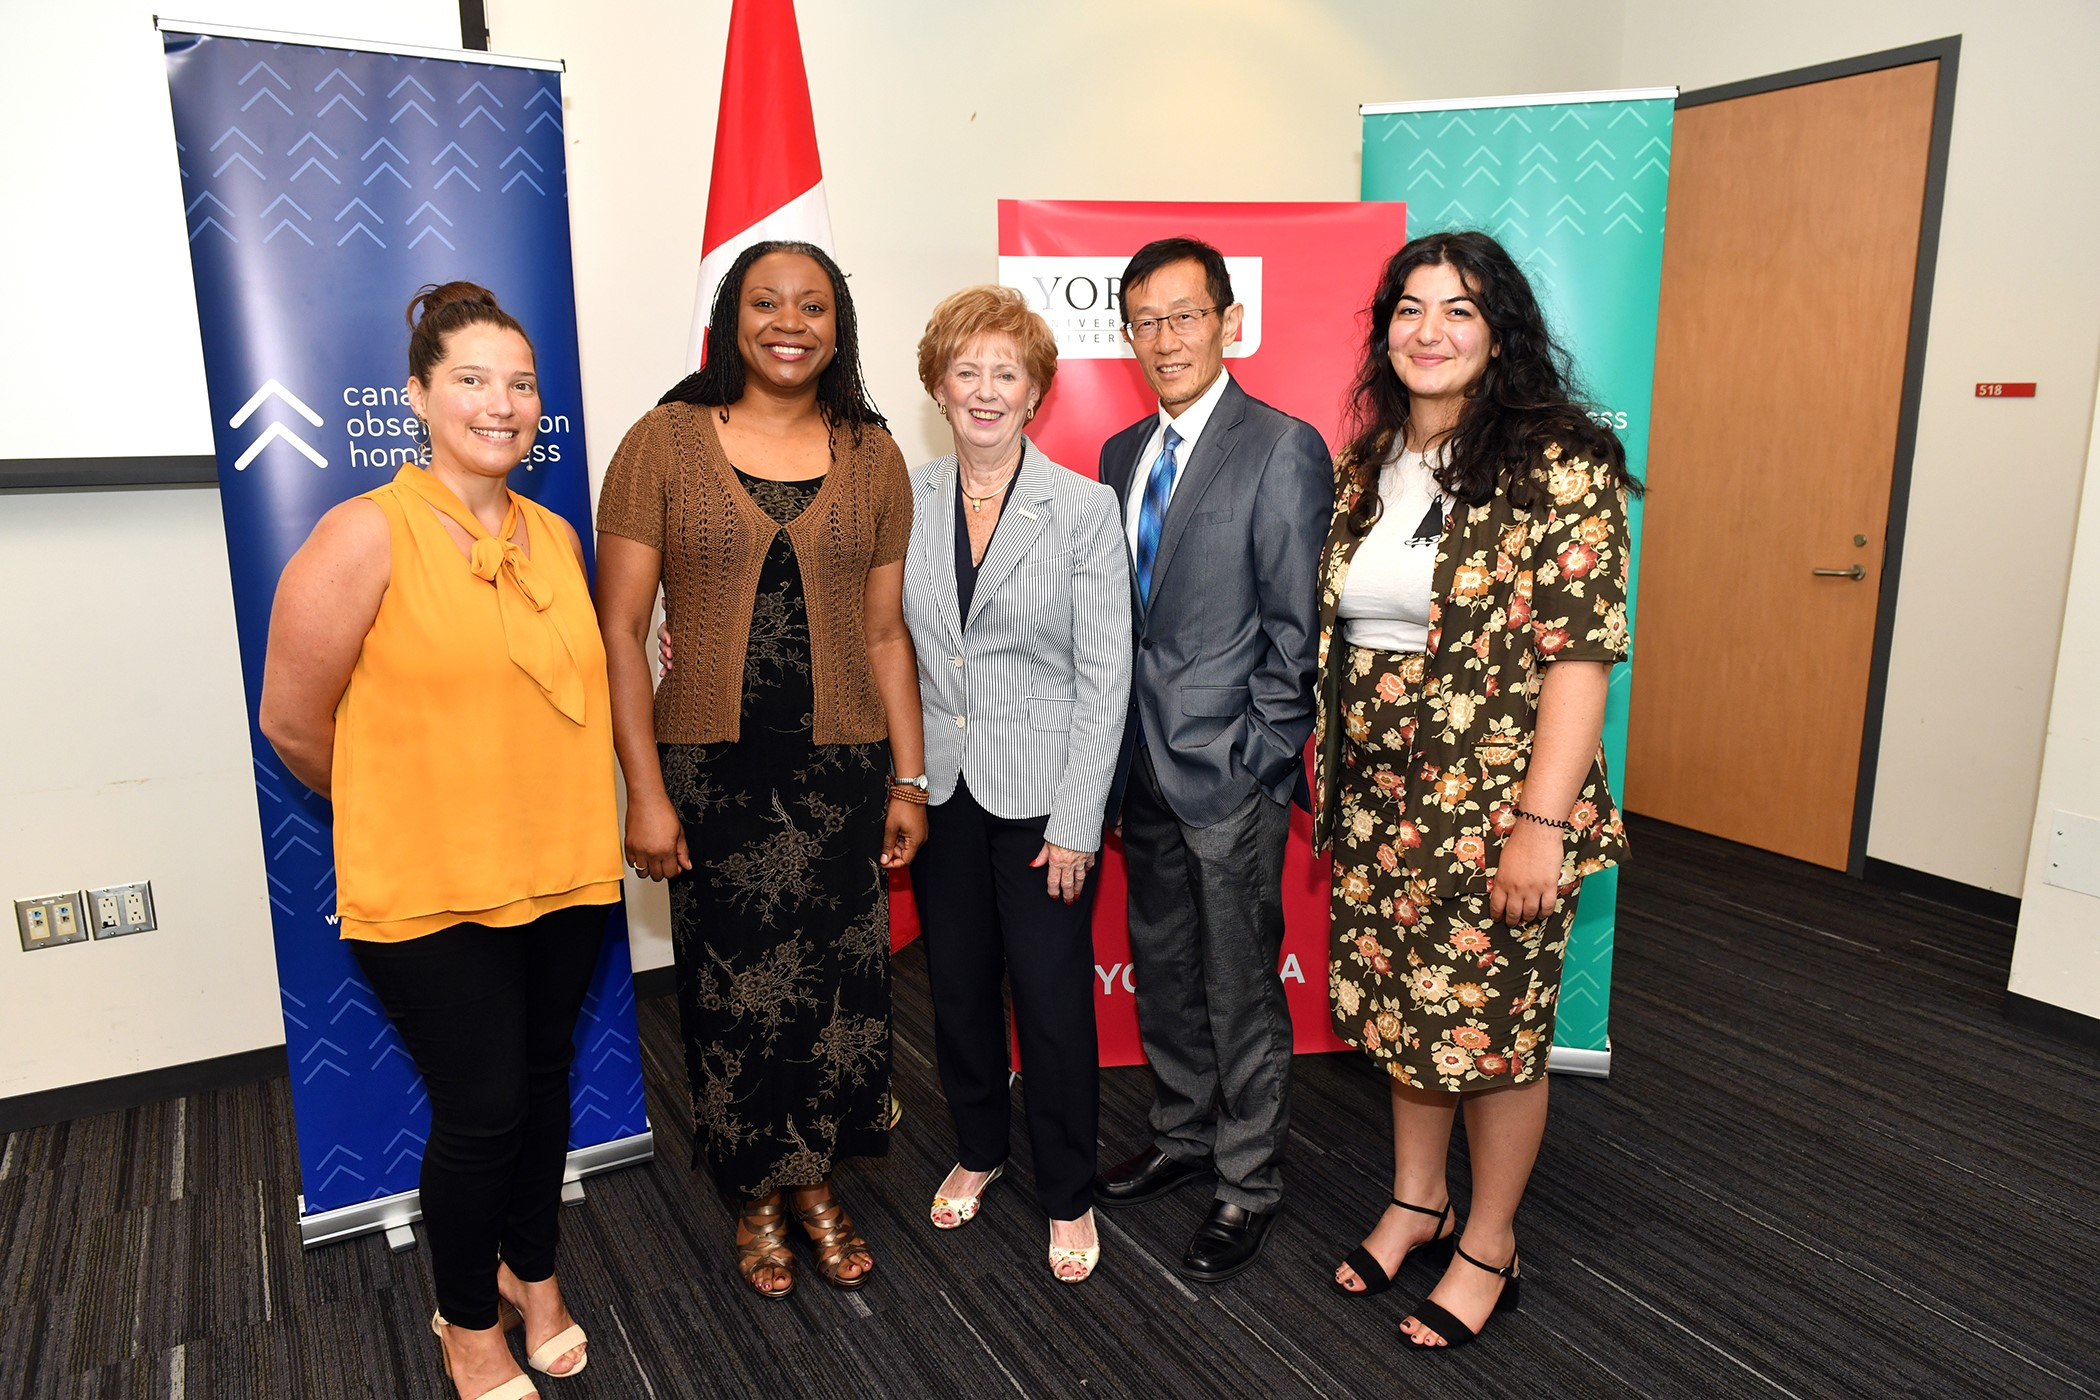 MP Judy Sgro with representatives of York University and the Canadian Observatory on Homelessness